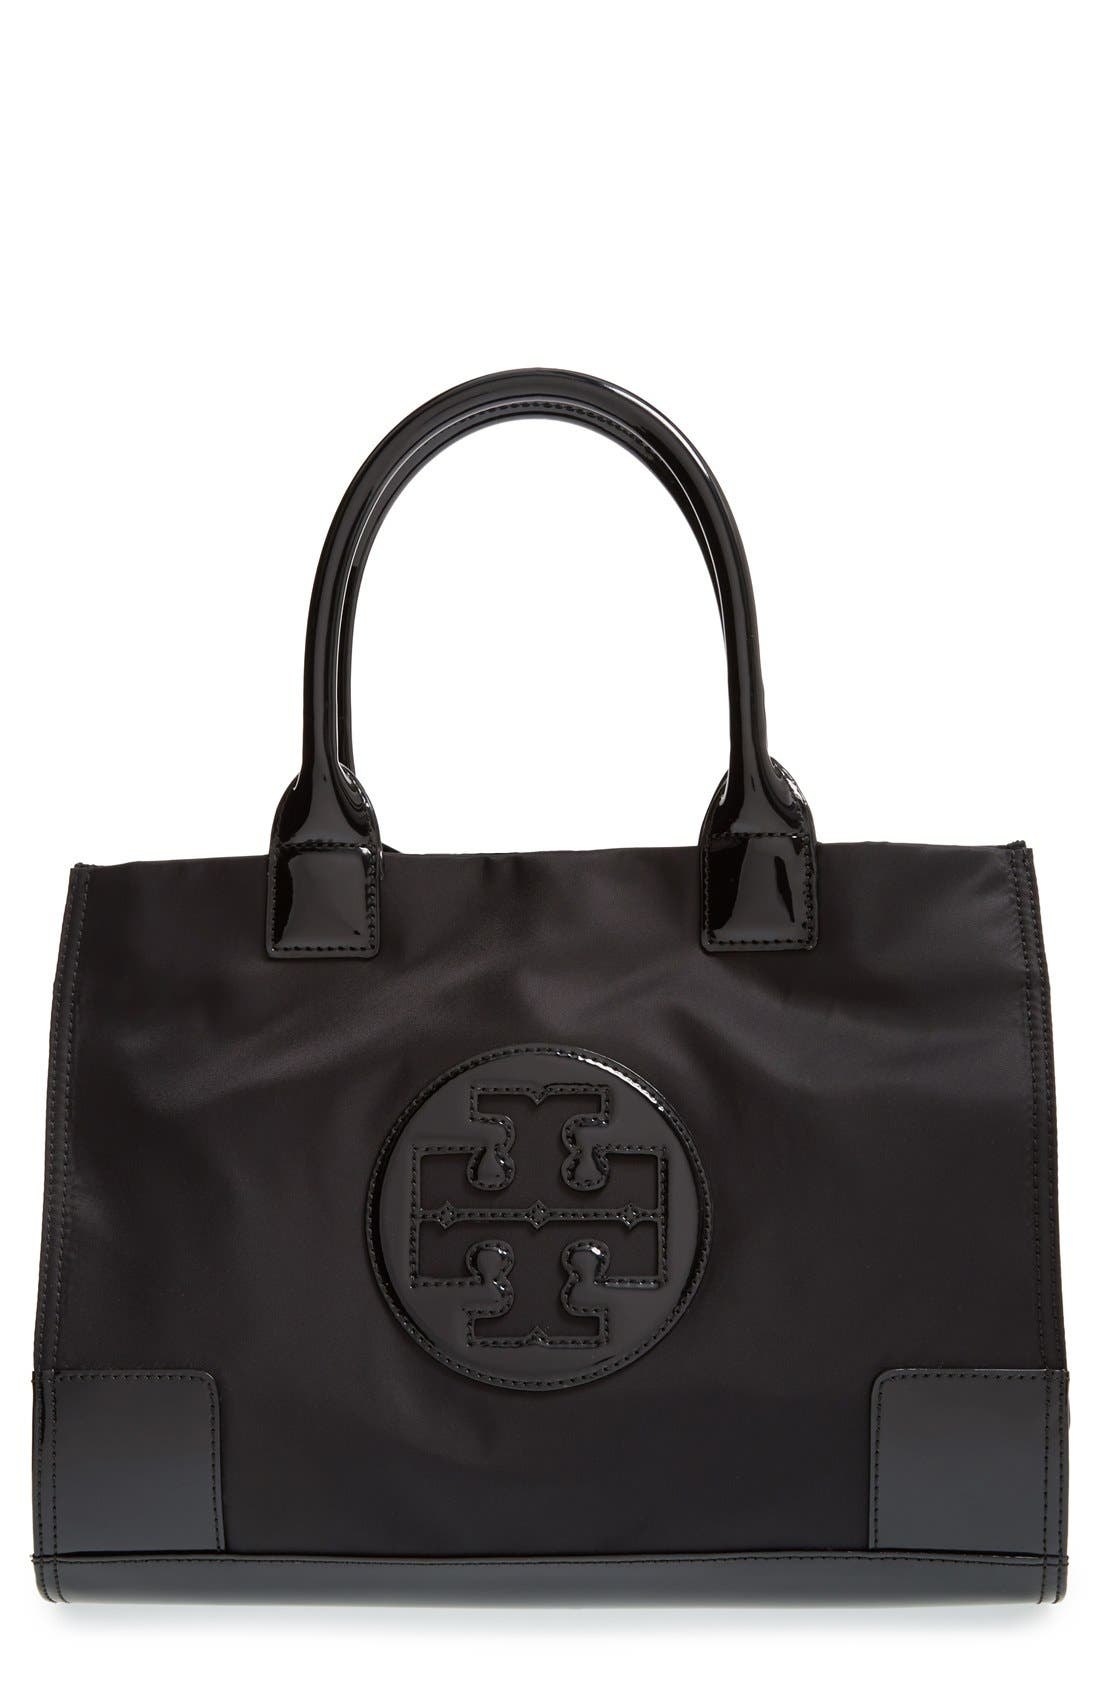 Alternate Image 1 Selected - Tory Burch 'Mini Ella' Nylon Tote